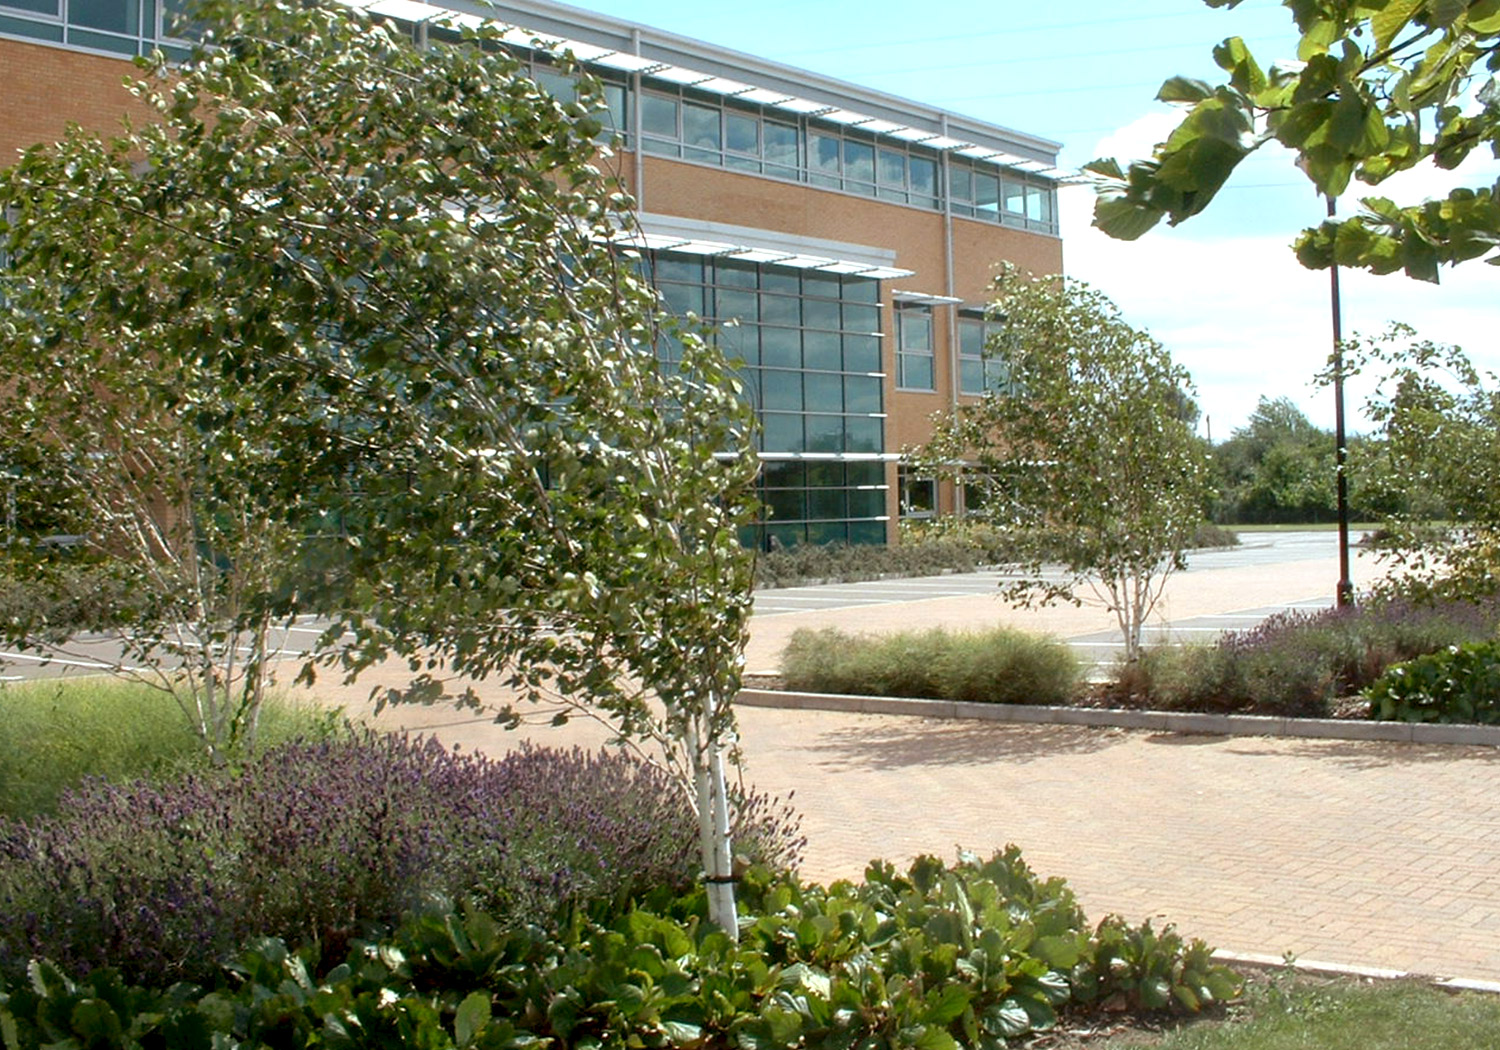 Projects-CommInd-CambsSciencePark-Carpark-1500x1050